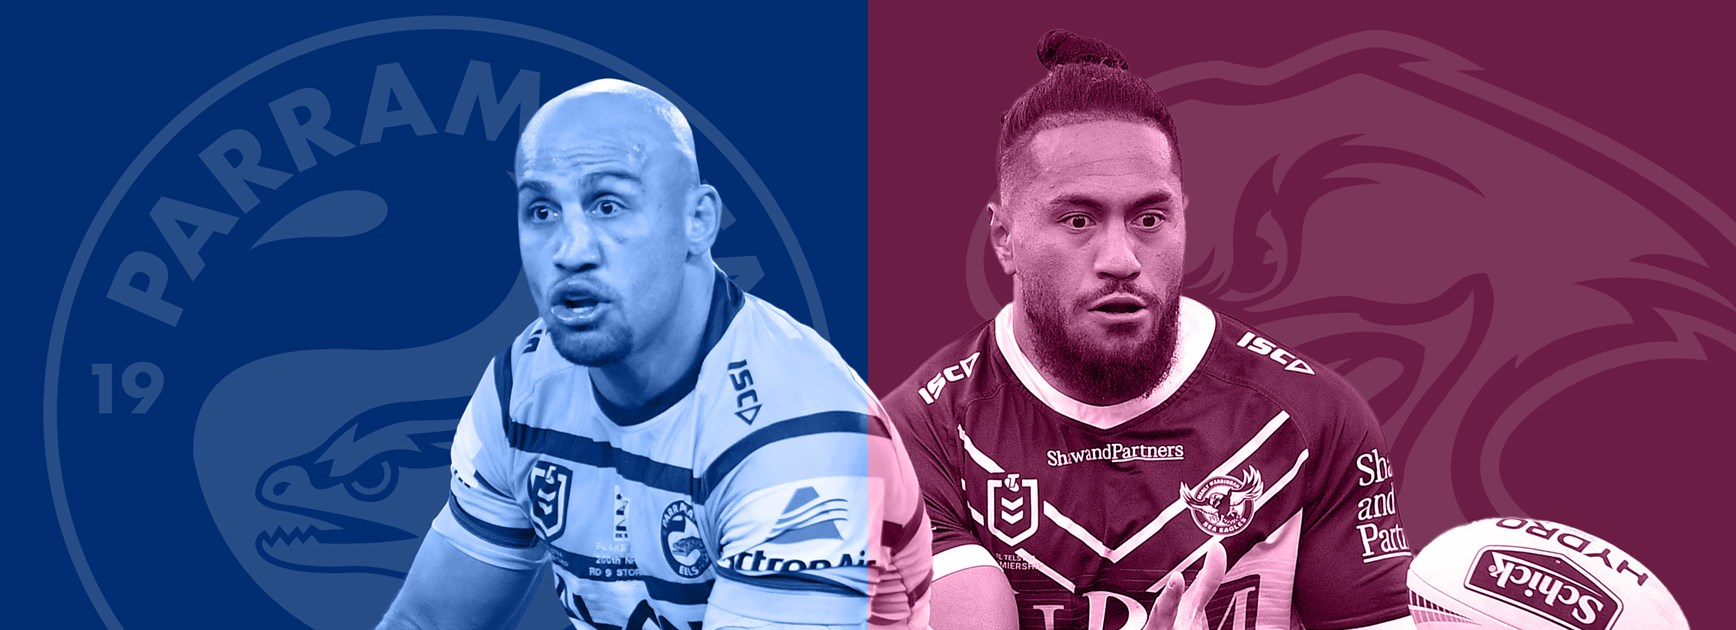 Match Preview: Eels v Sea Eagles, Round 25